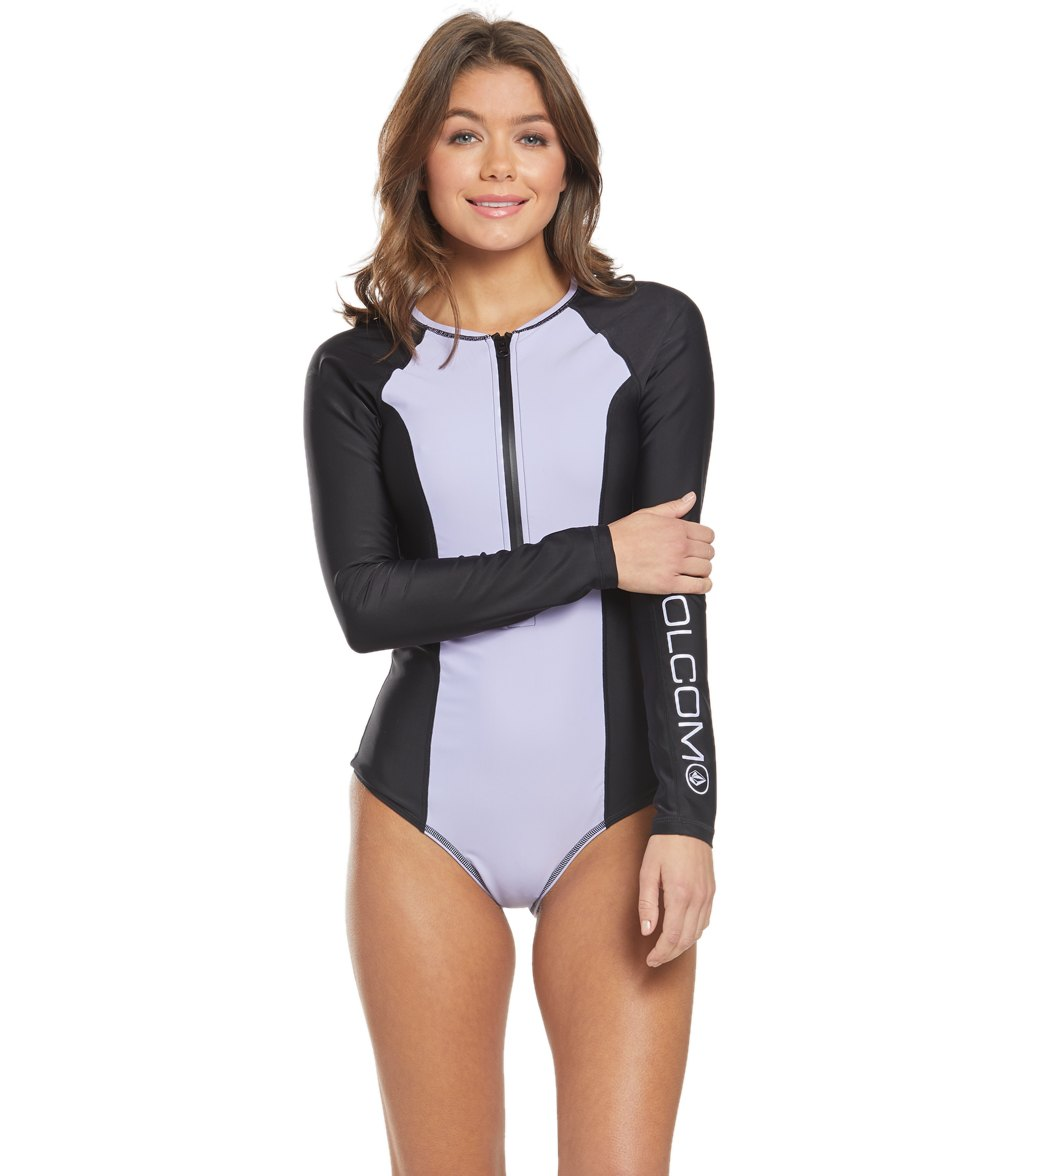 715fe80dc0 Volcom Simply Solid Long Sleeve One Piece Swimsuit at SwimOutlet.com ...